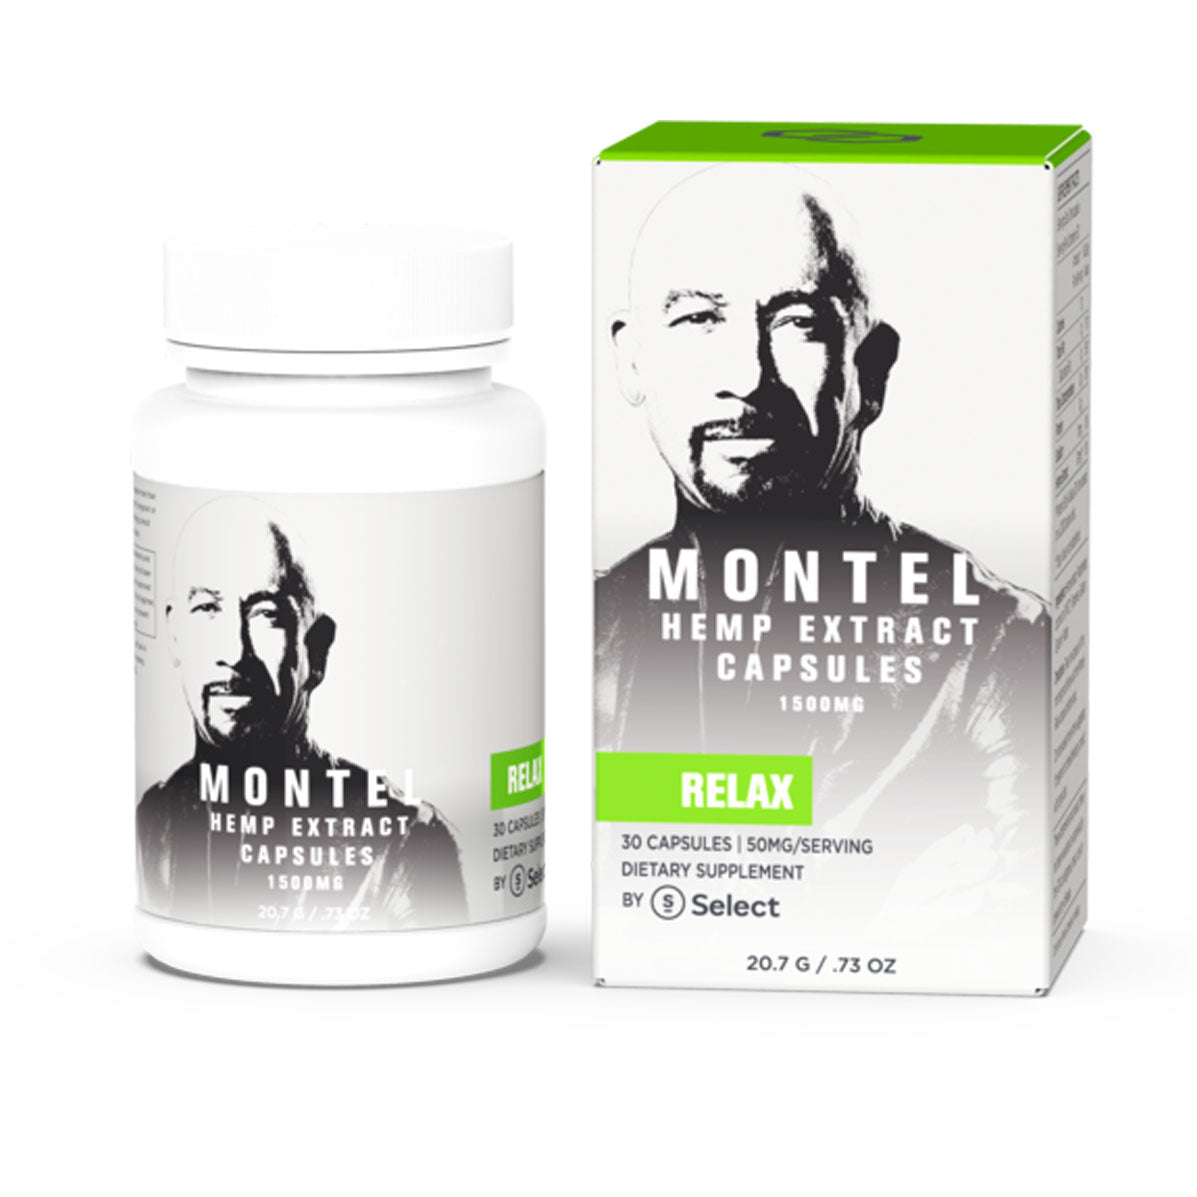 Montel by Select 1500mg Relax Capsules - CBD Hemp Store, The #1 Trusted Source for CBD Oil, Vape Oil, CBD Edibles, CBD Lotions